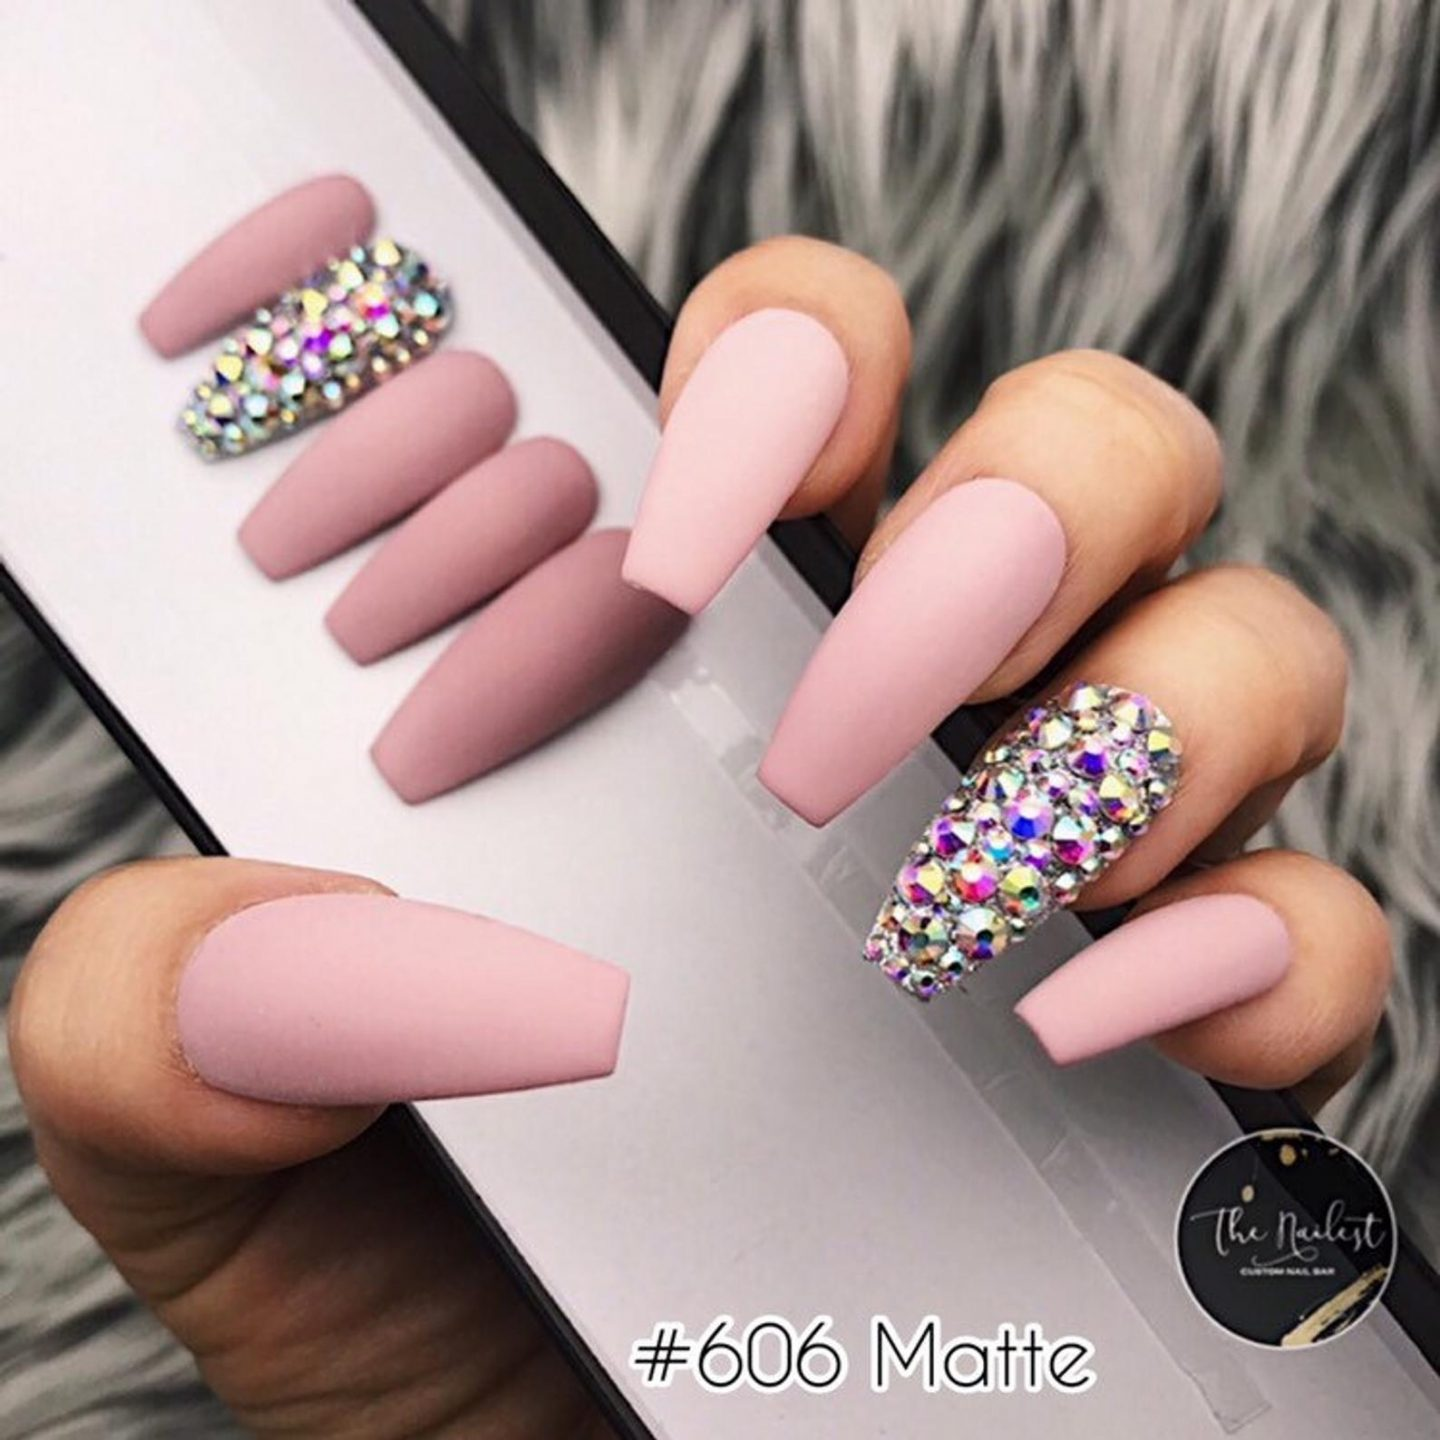 Matte pink nails with rhinestones